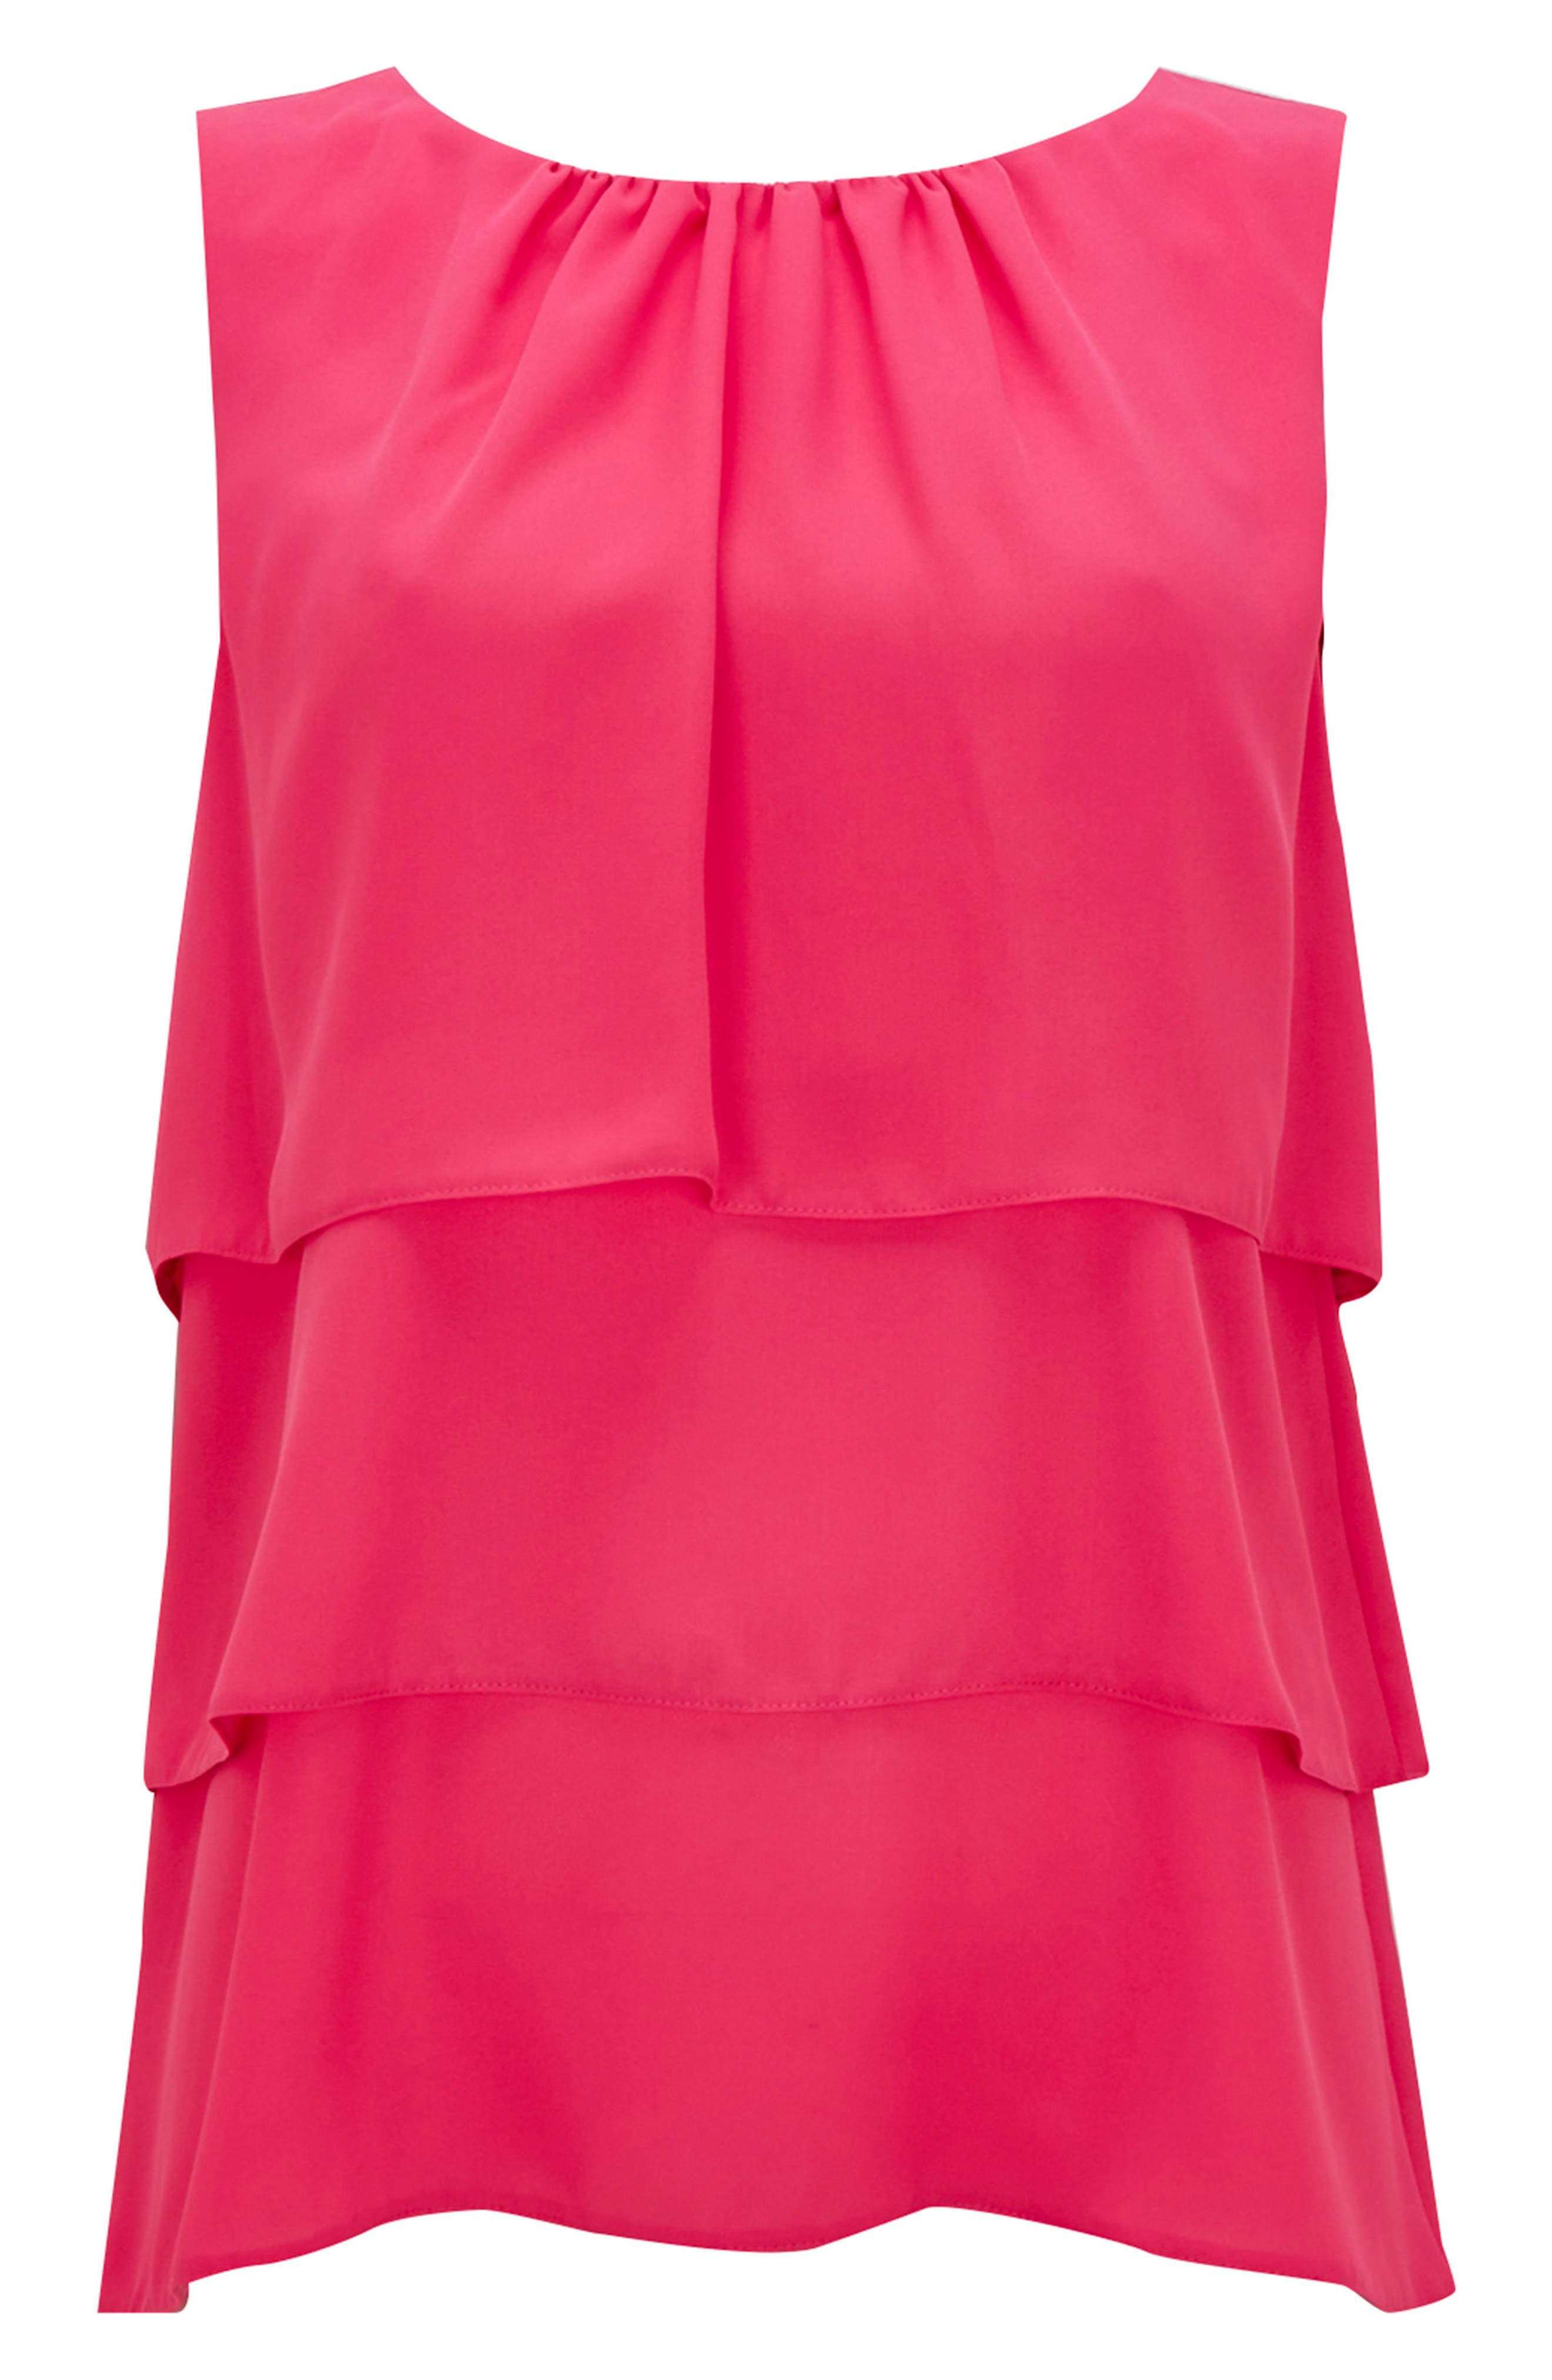 Tiered Sleeveless Top,                             Alternate thumbnail 5, color,                             Bright Pink